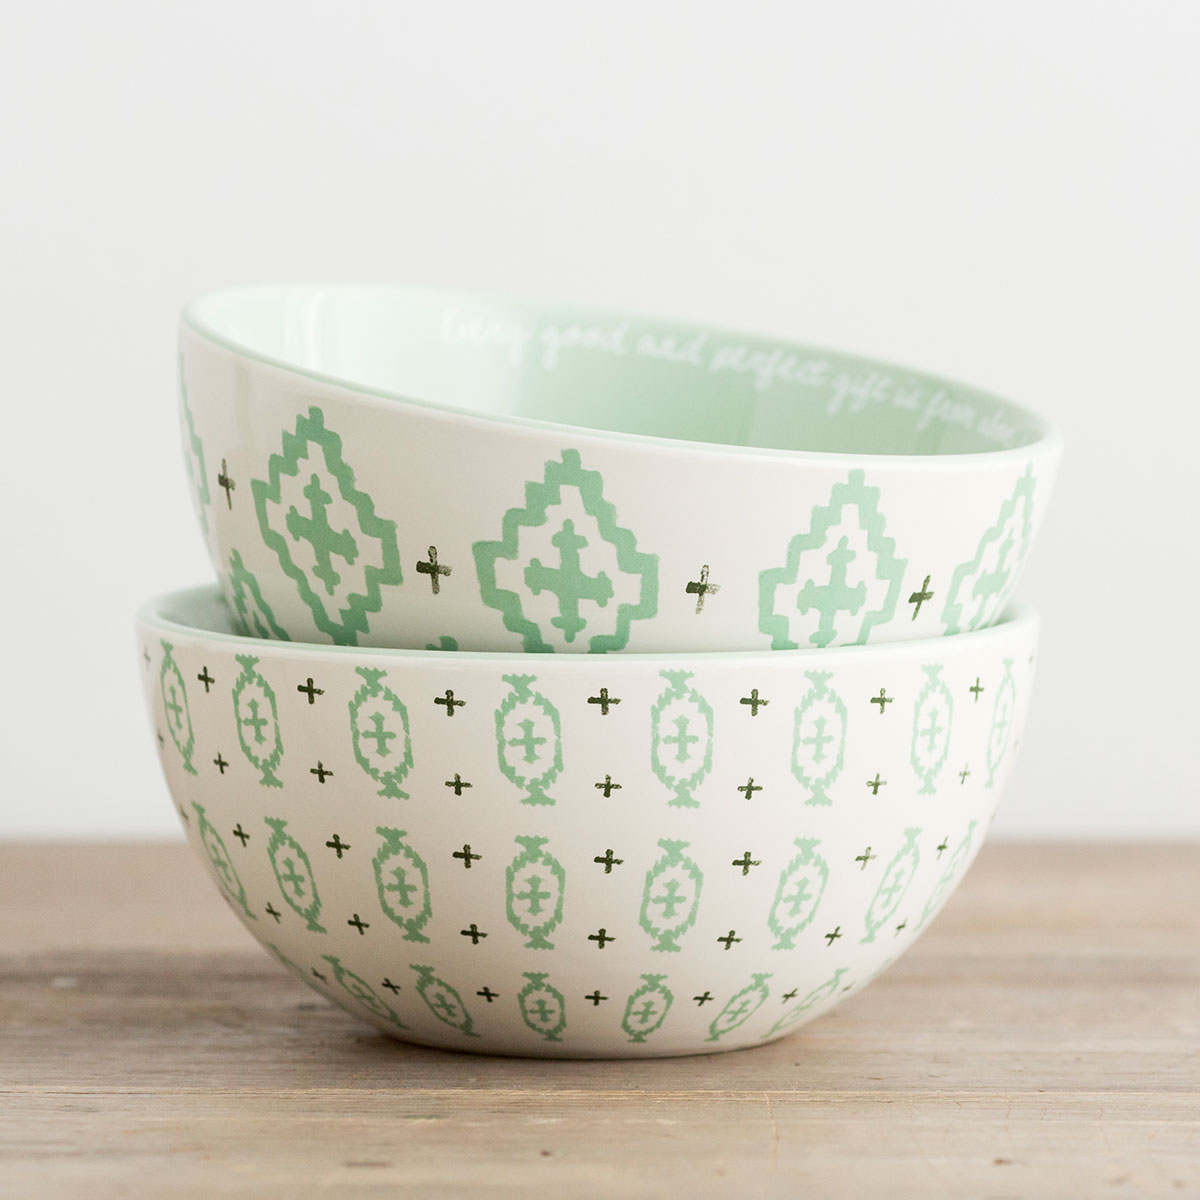 Every Good and Perfect Gift - 2 Ceramic Bowls - Set 1